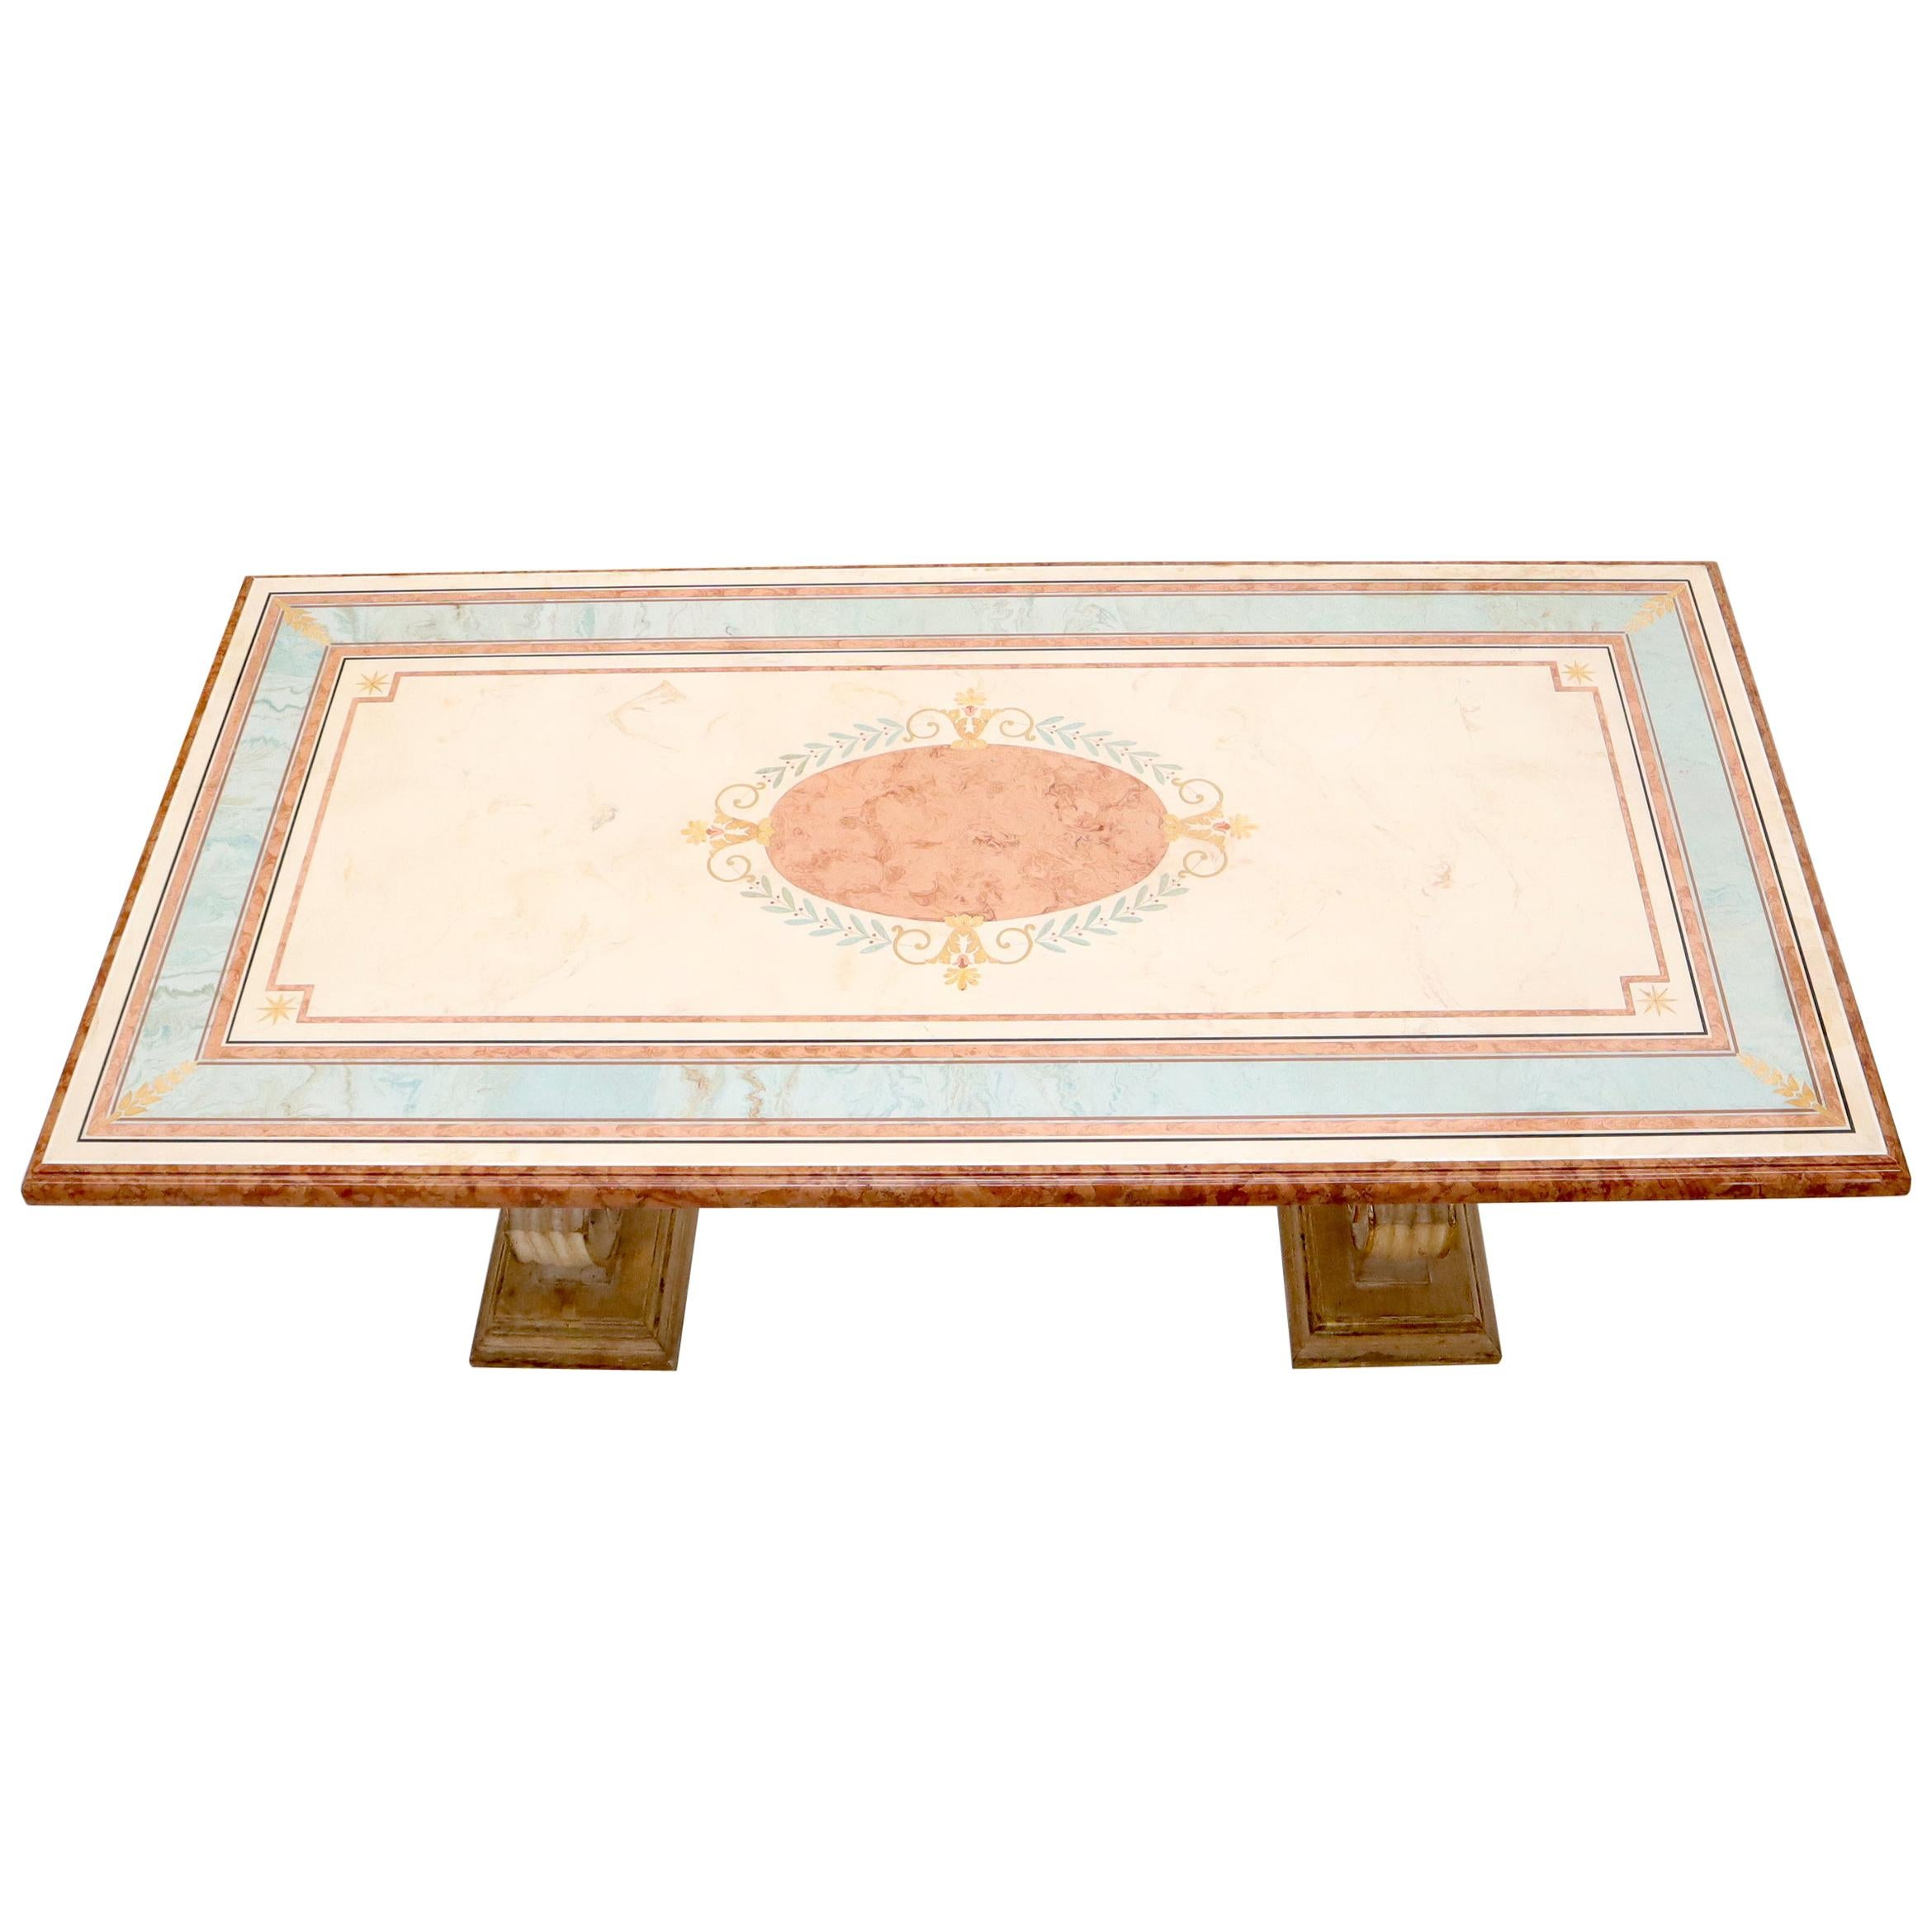 Enamel Decorated Marble Top Dining Table on Carved Gold Lyre Shape Pedestals